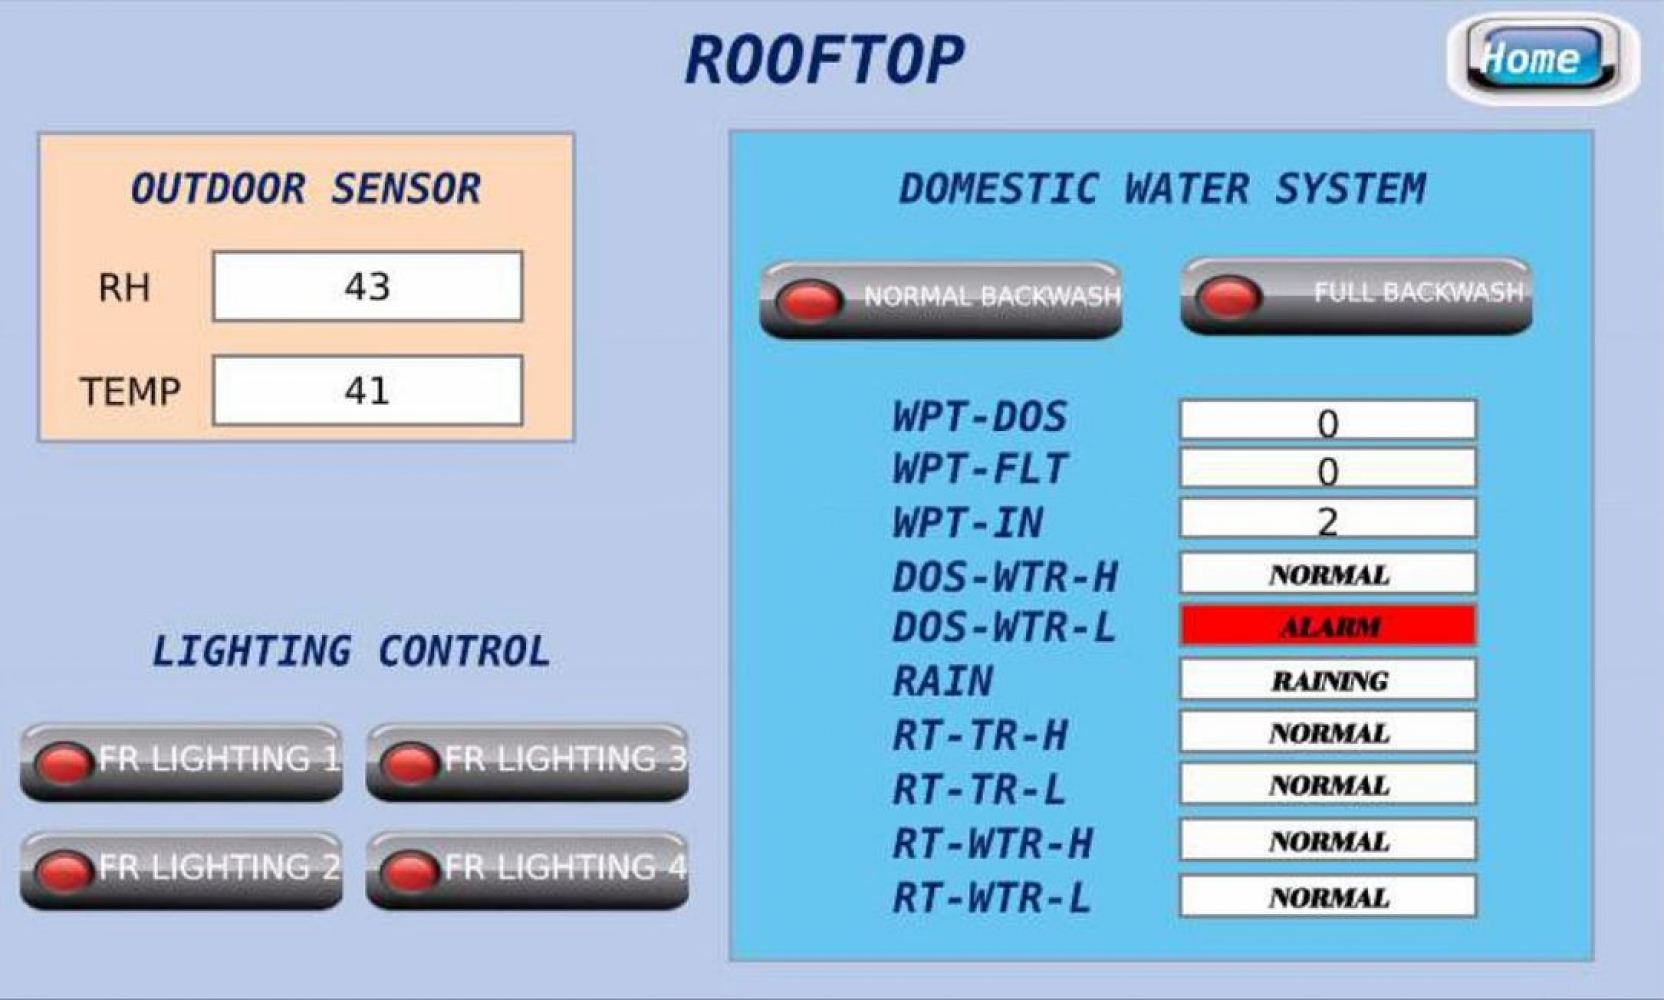 ROOFTOP SYSTEM